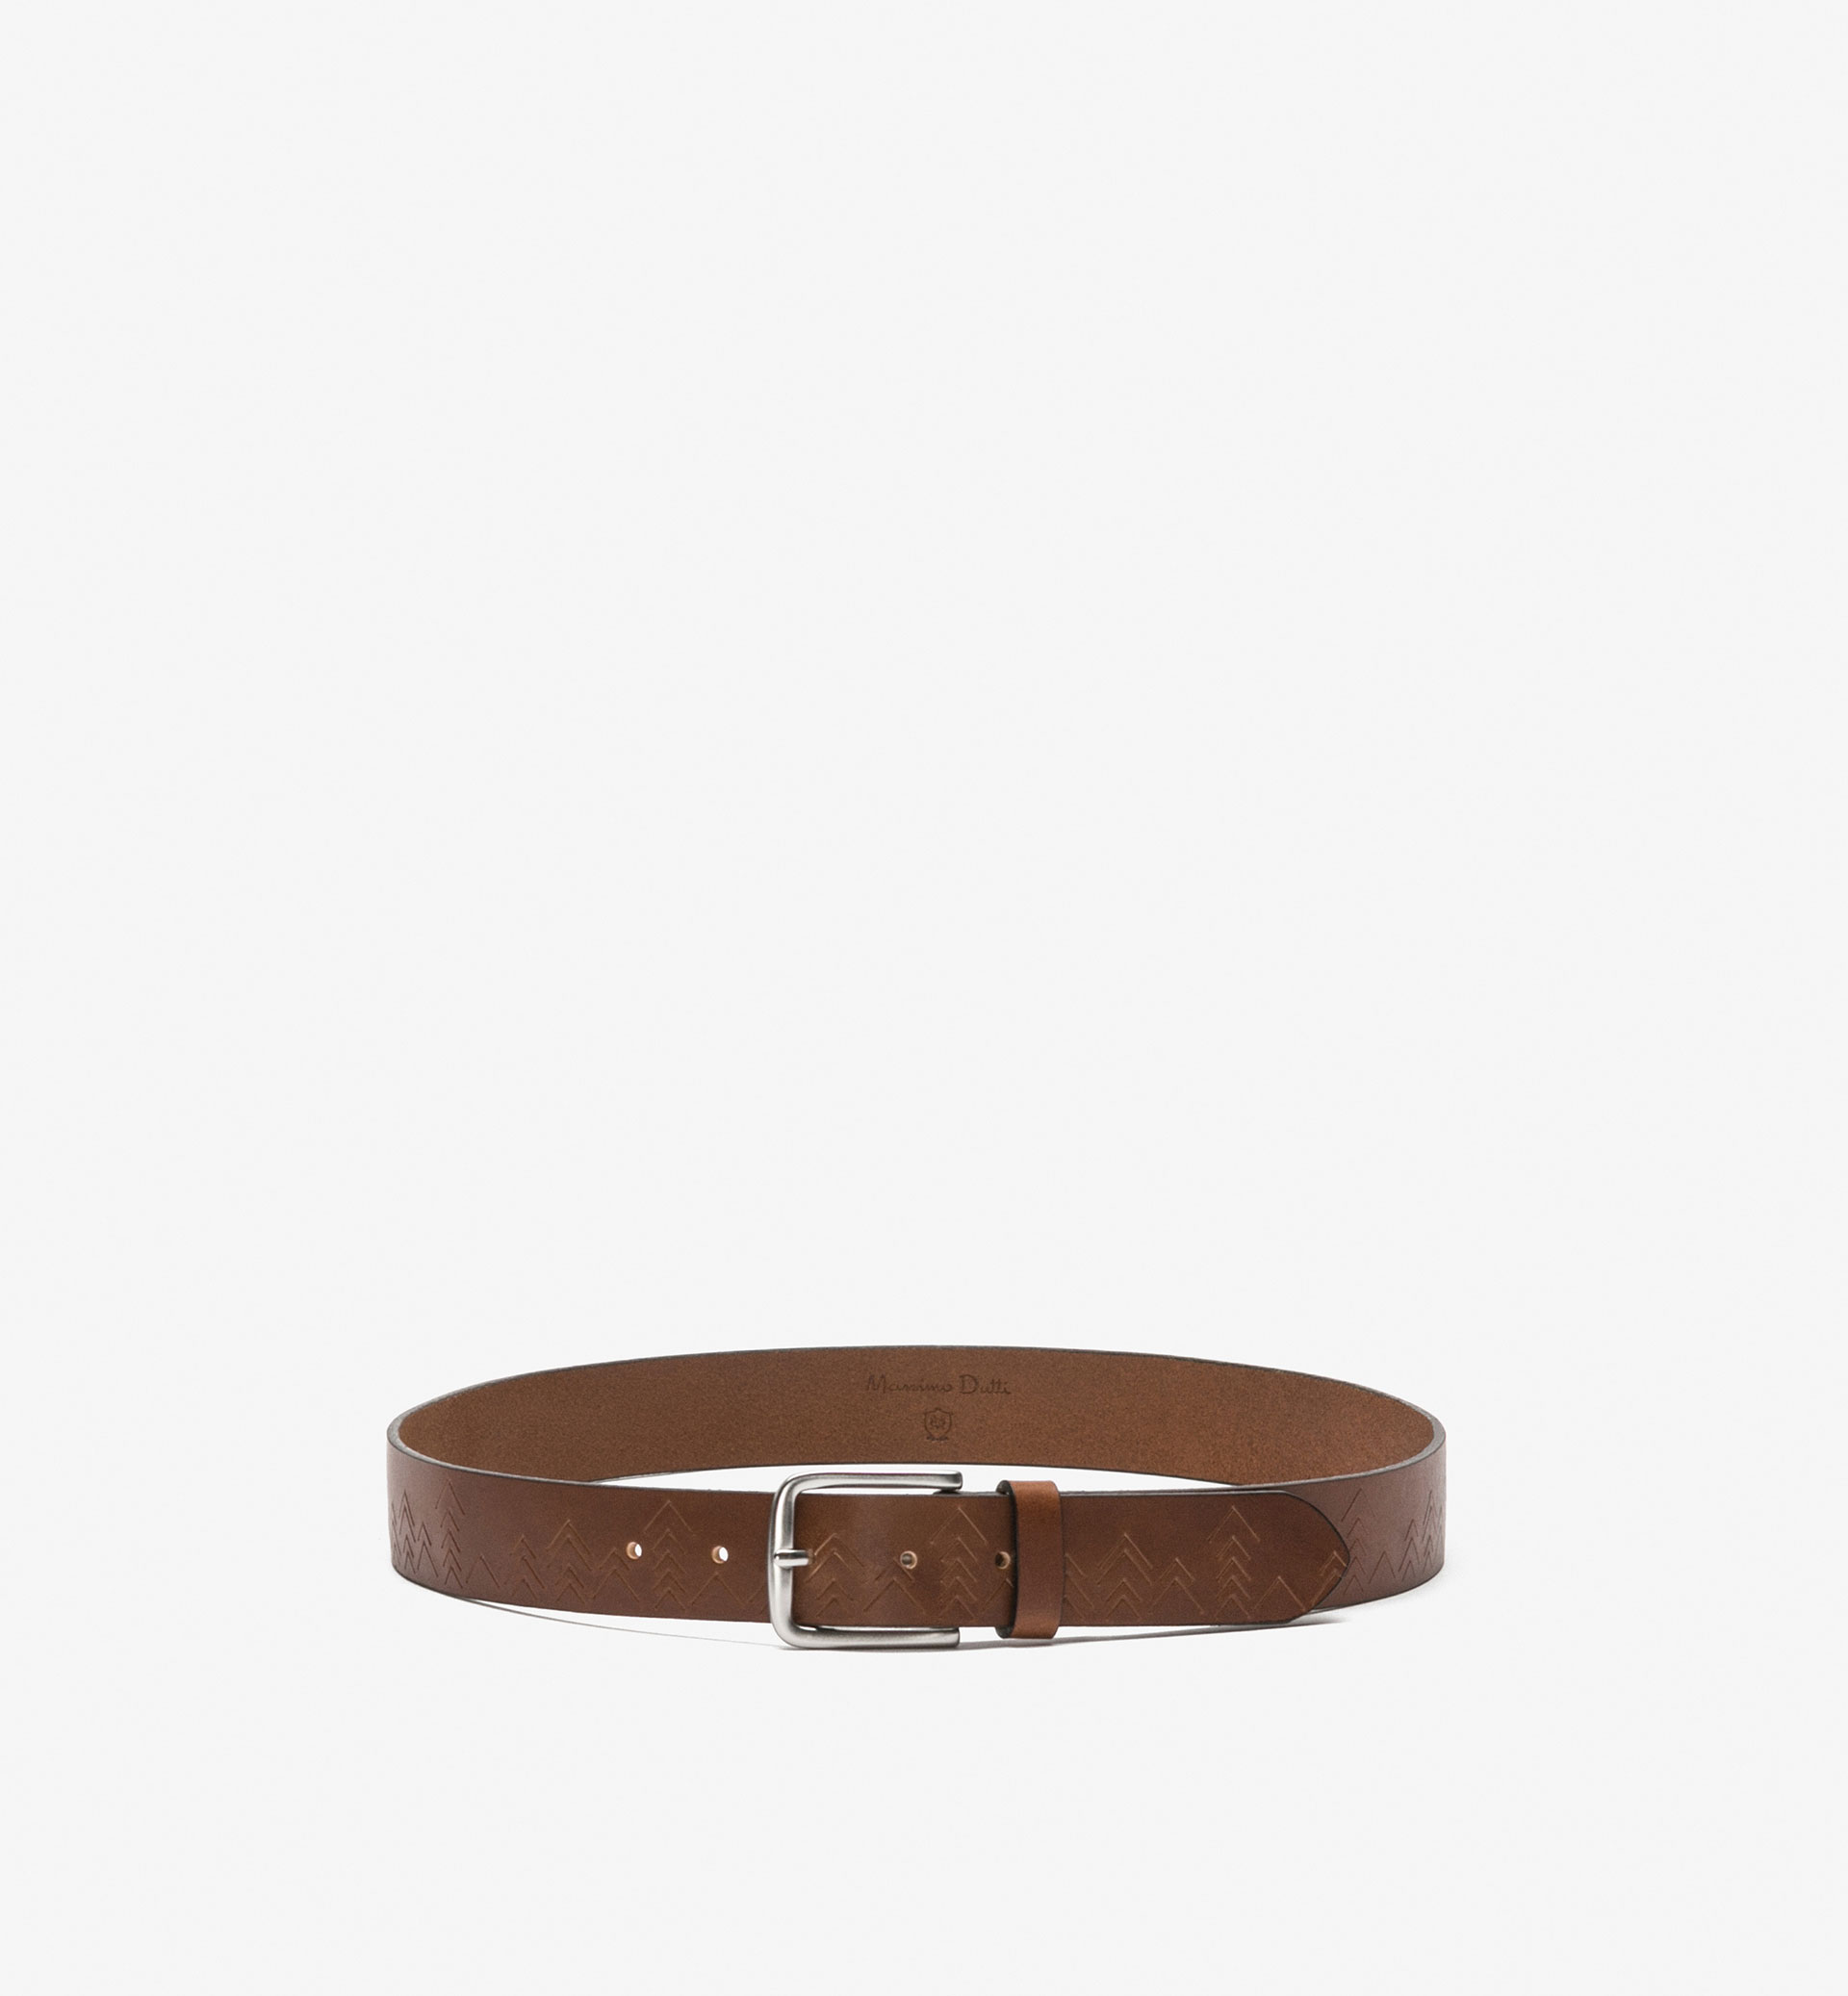 GEOMETRIC PRINT LEATHER BELT